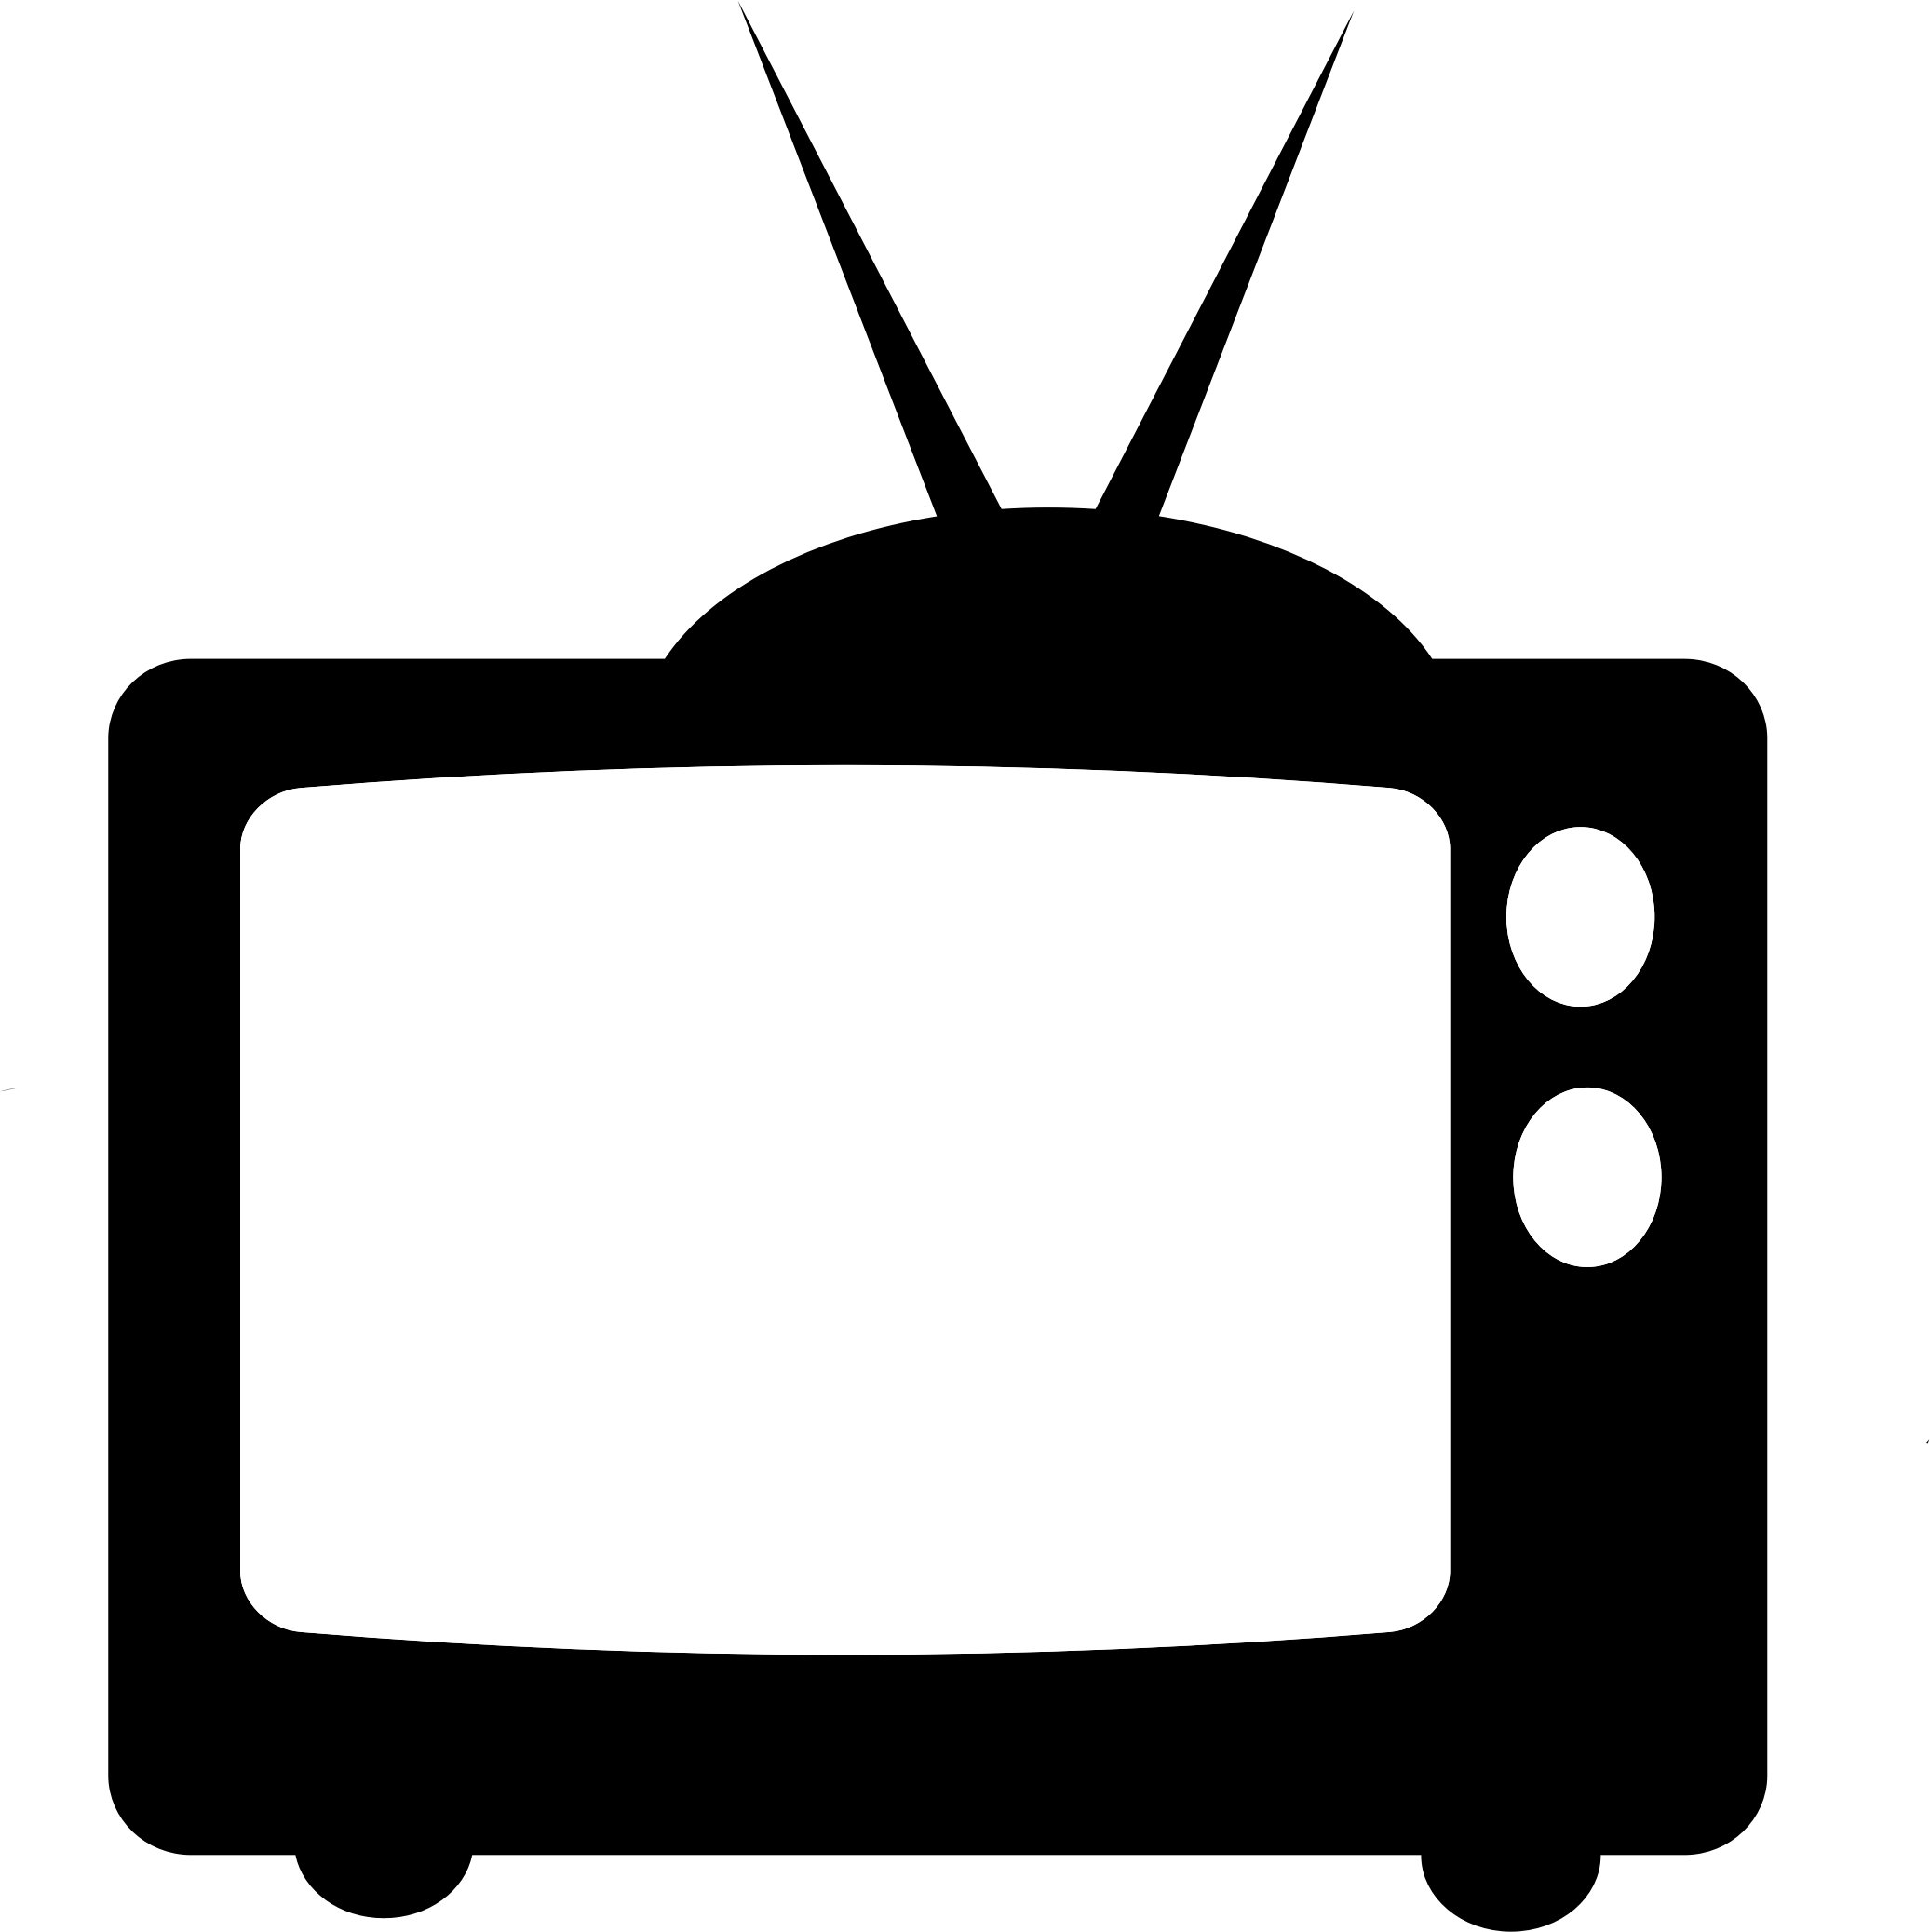 Television clipart telly, Television telly Transparent FREE.